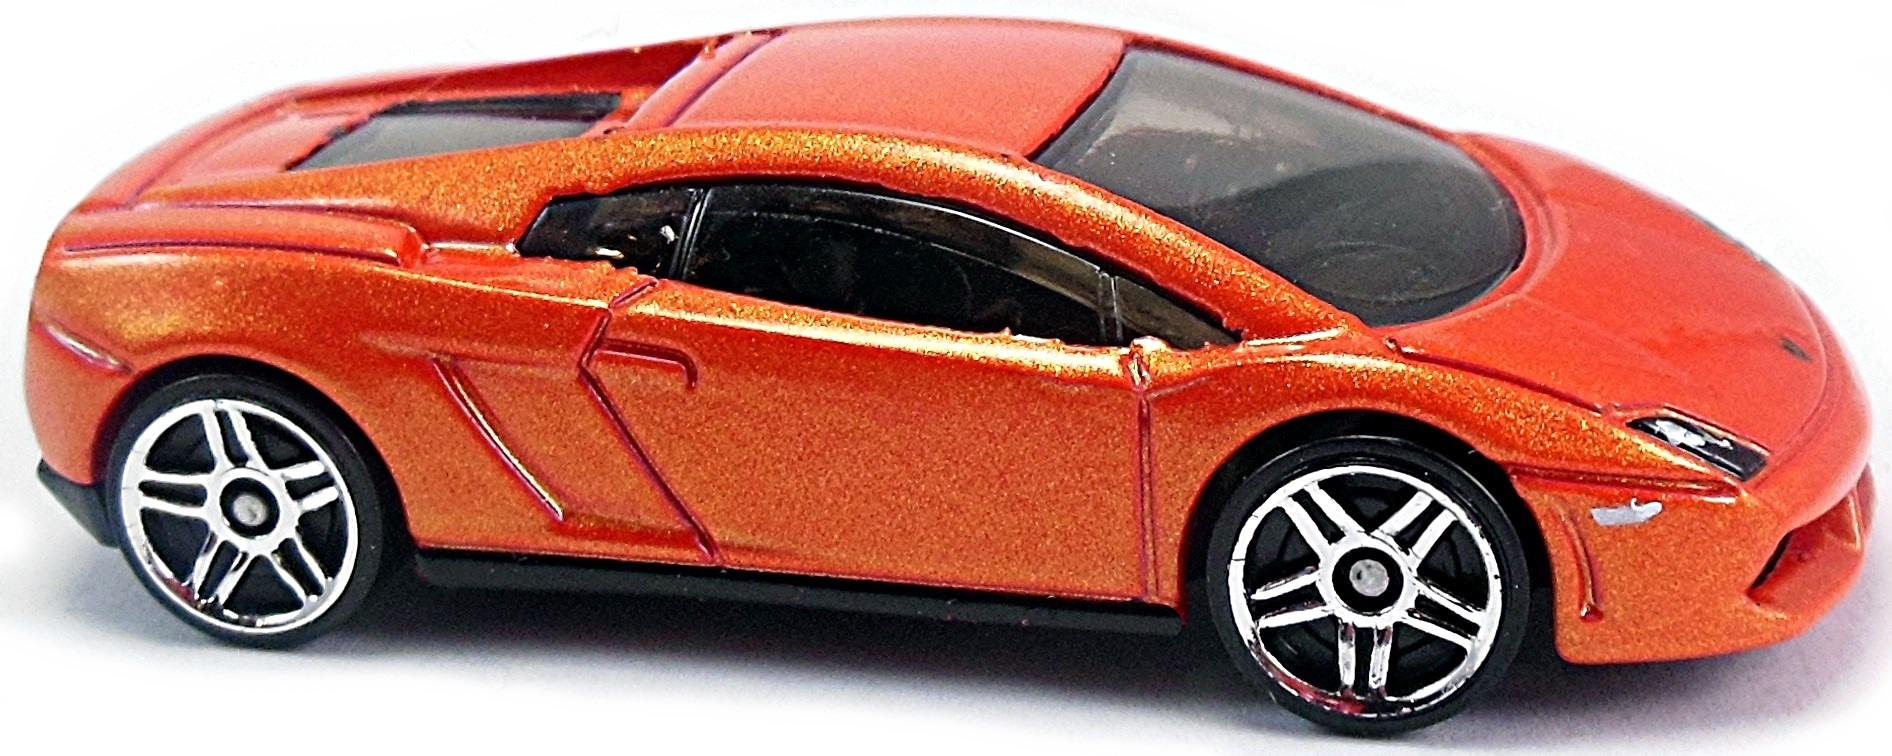 lamborghini gallardo lp 560 4 66mm 2010 hot wheels newsletter. Black Bedroom Furniture Sets. Home Design Ideas